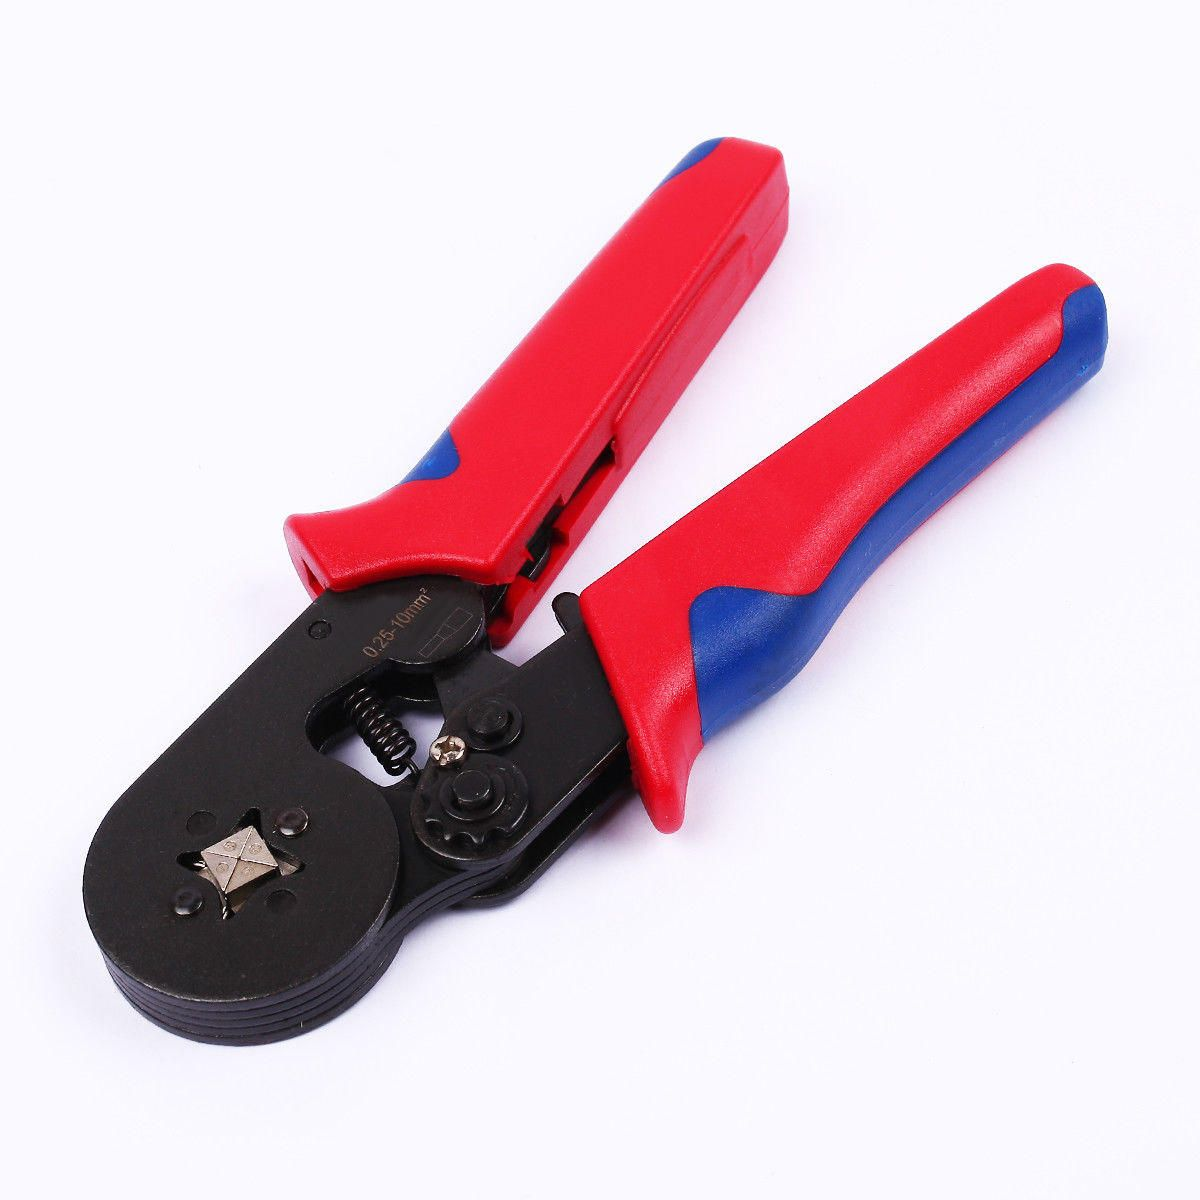 HRN US$36.72 Crimp Tool Kit Ferrule Crimping Pliers with 1200 Electrical Wire Connector Terminal